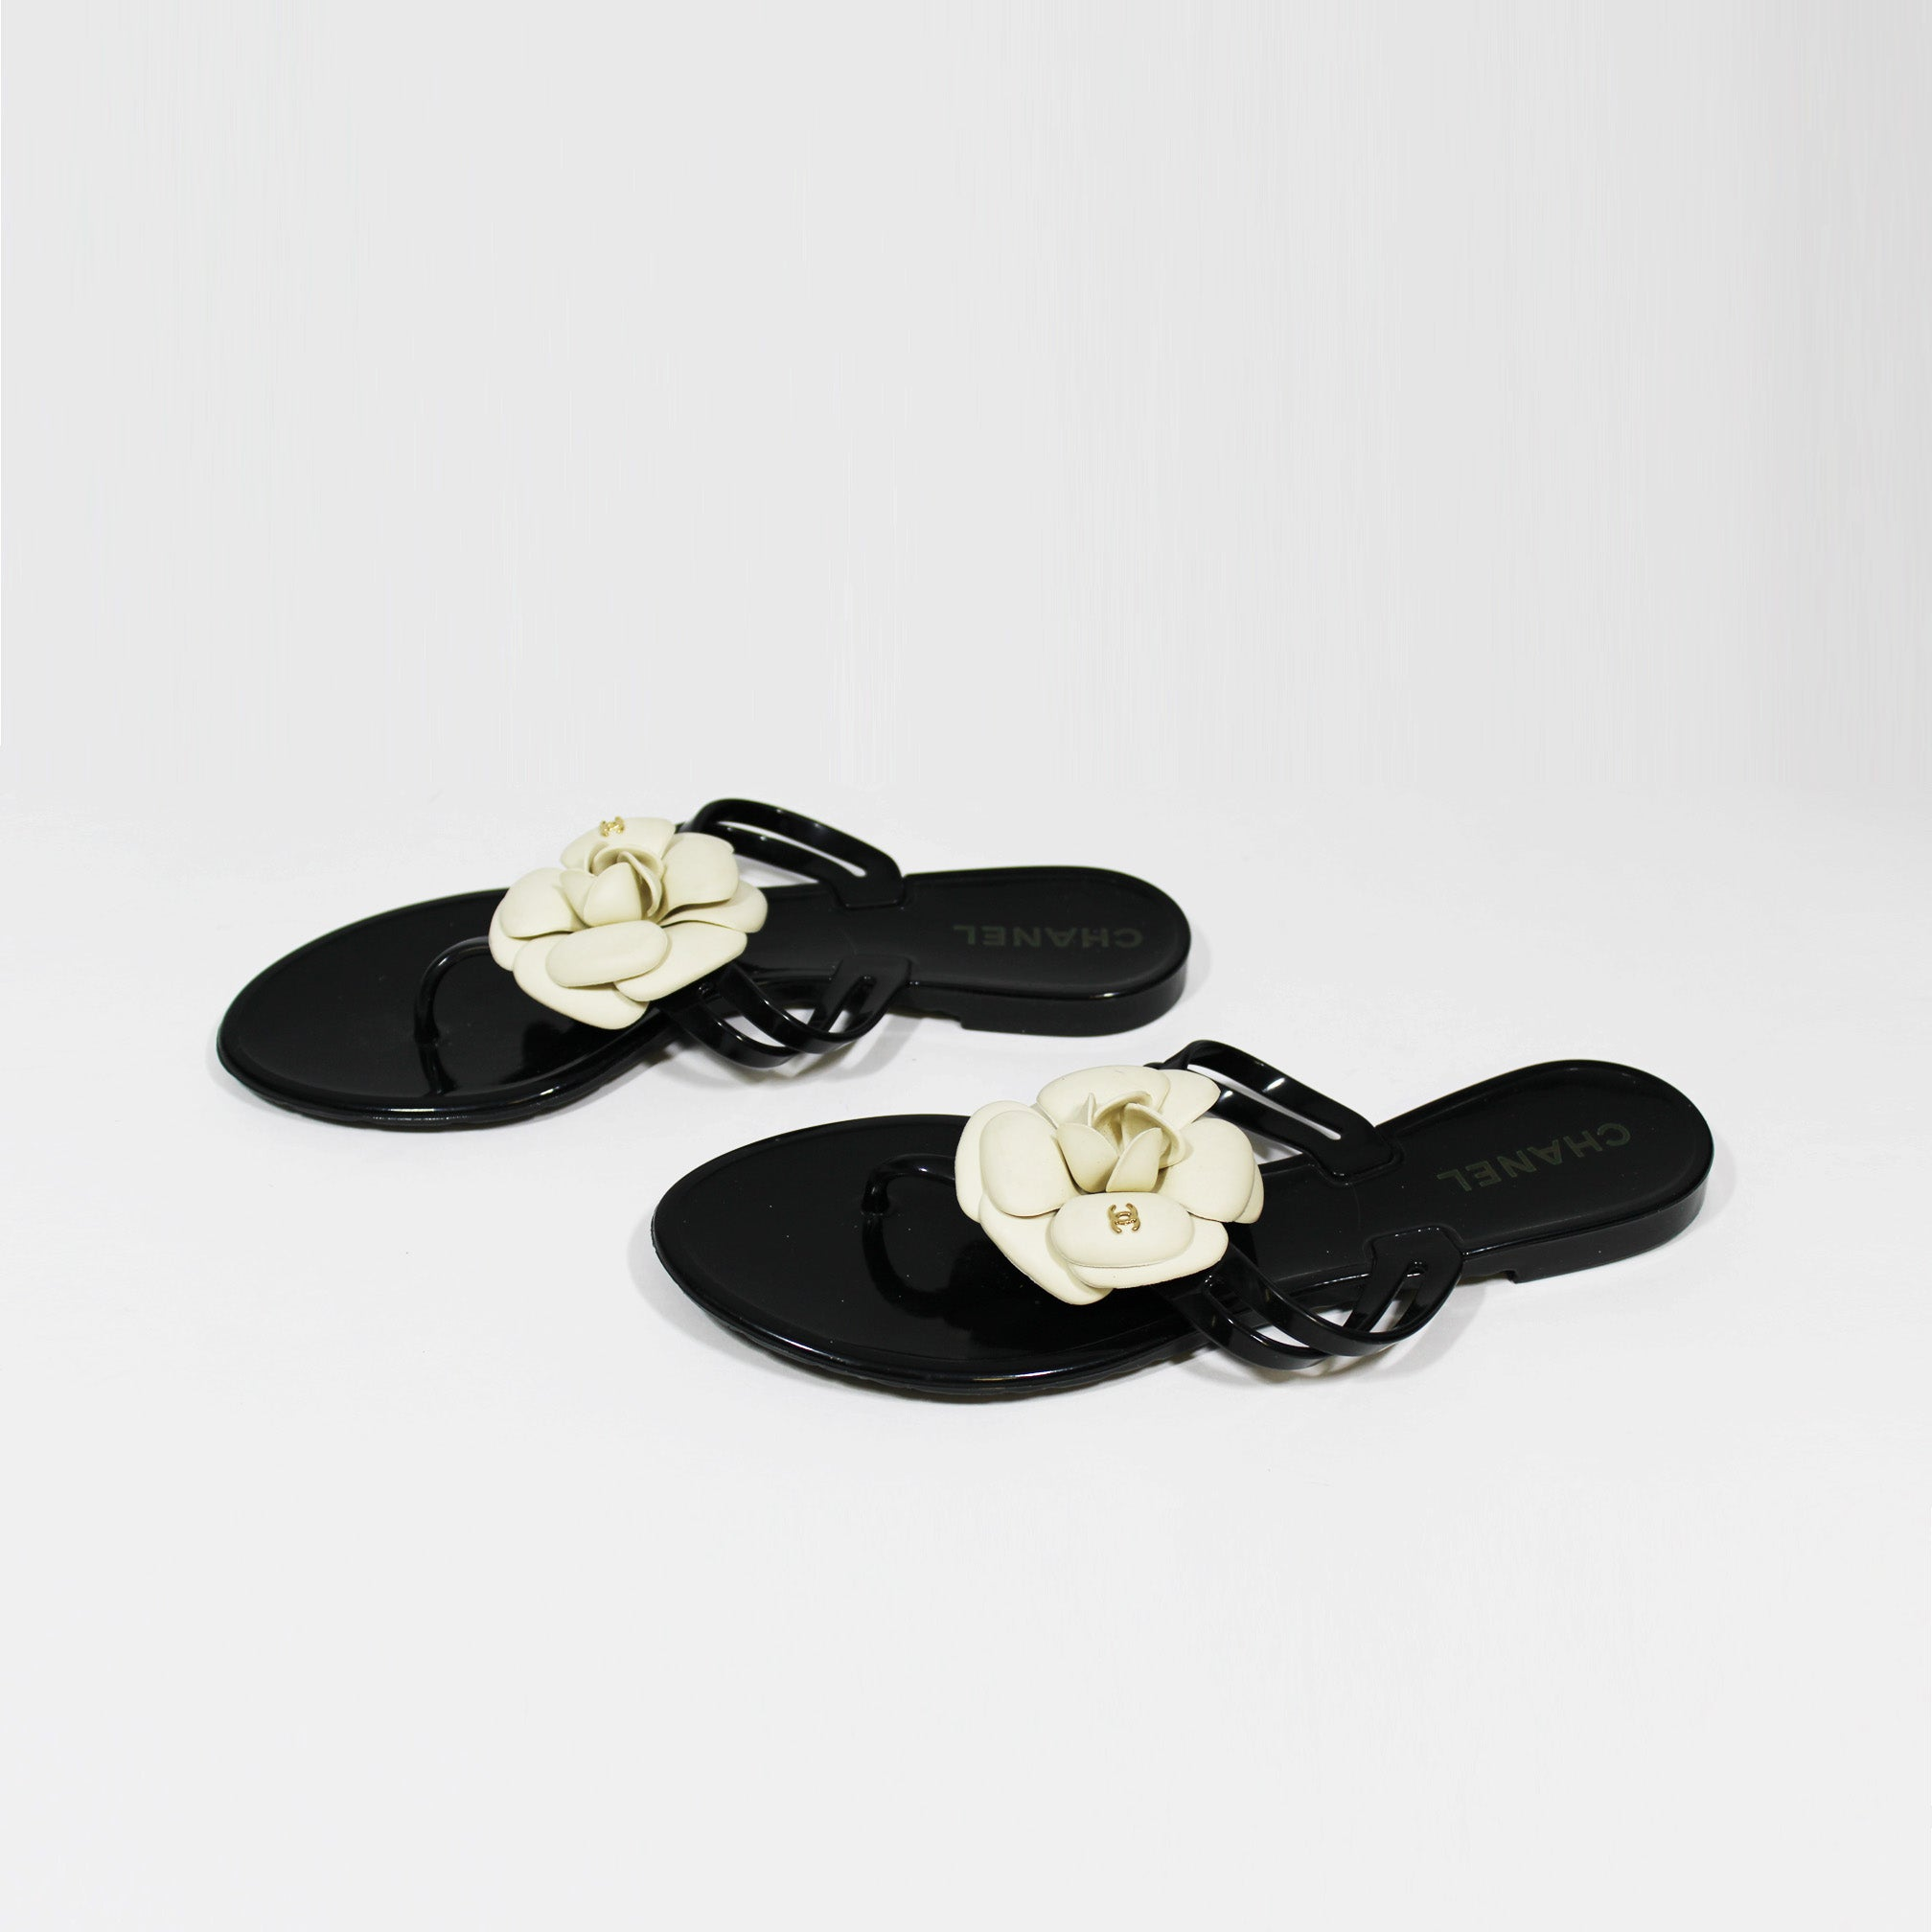 CHANEL Black & Cream Camellia Flower Jelly Sandals 38